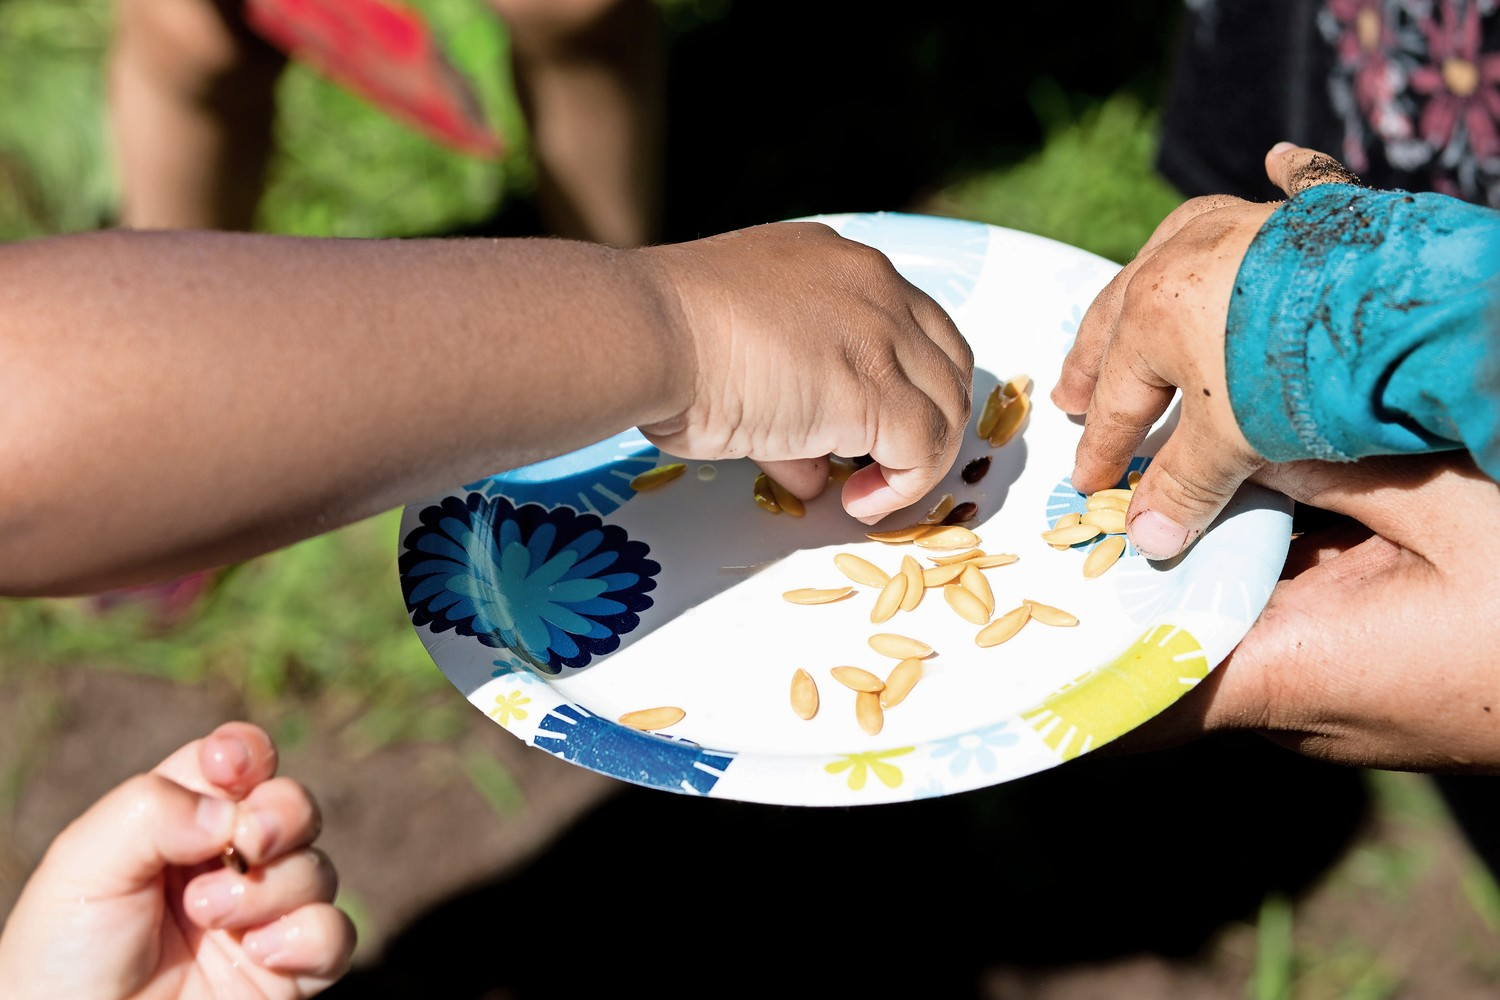 Riverdale Presbyterian Church Nursery School Students Take Fruit Seeds From A Paper Plate That They Will